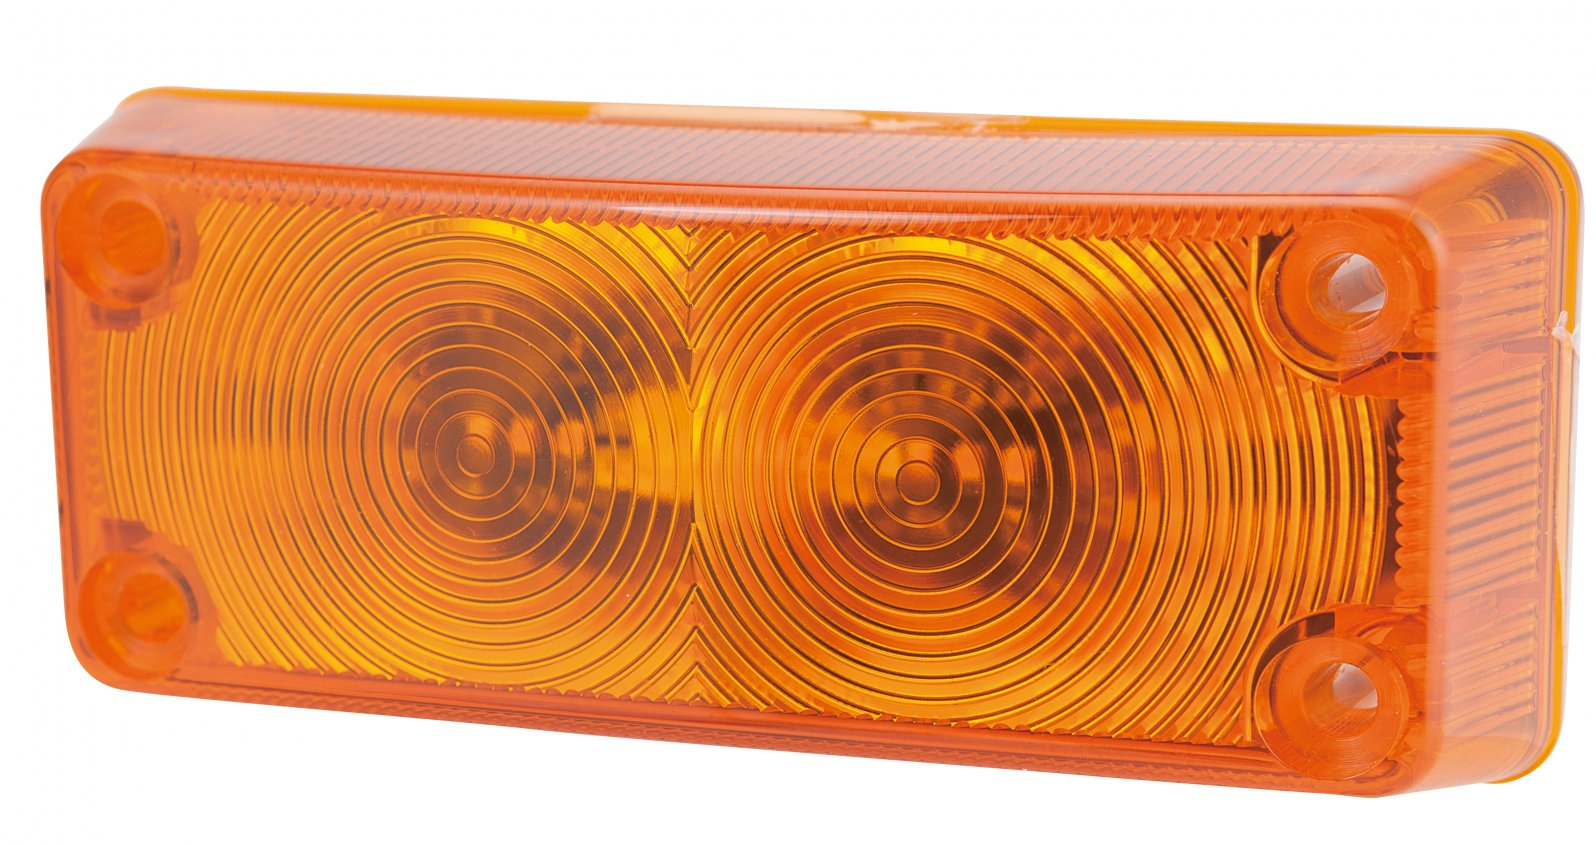 Truck / Trailer / Heavy Duty Marker Lamp for Lighting Series made by Sirius Light Technology Co., LTD 南勝企業股份有限公司 - MatchSupplier.com